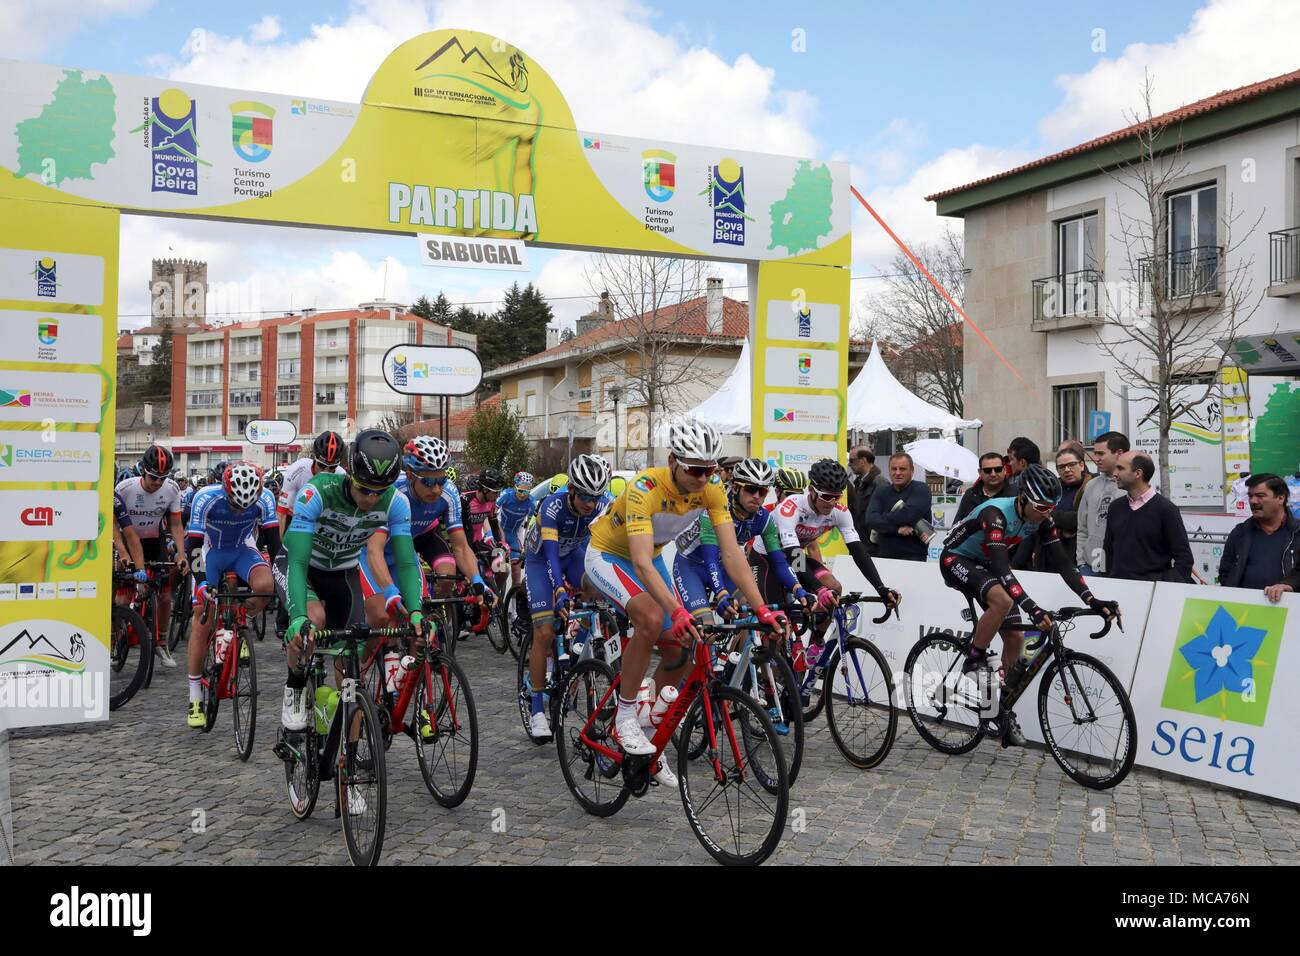 Sabugal, Portugal. 14th Apr, 2018. View of the exit of the second stage from Sabugal, Portugal, on 14 April 2018.César Fonte has been the winner of the second stage of the Beiras e Serra de Estrela Portuguese Grand Prix, which ran between the cities of Sabugal and Seia, next to the Spanish border of Salamanca. Credit: Carlos García/EFE/Alamy Live News - Stock Image